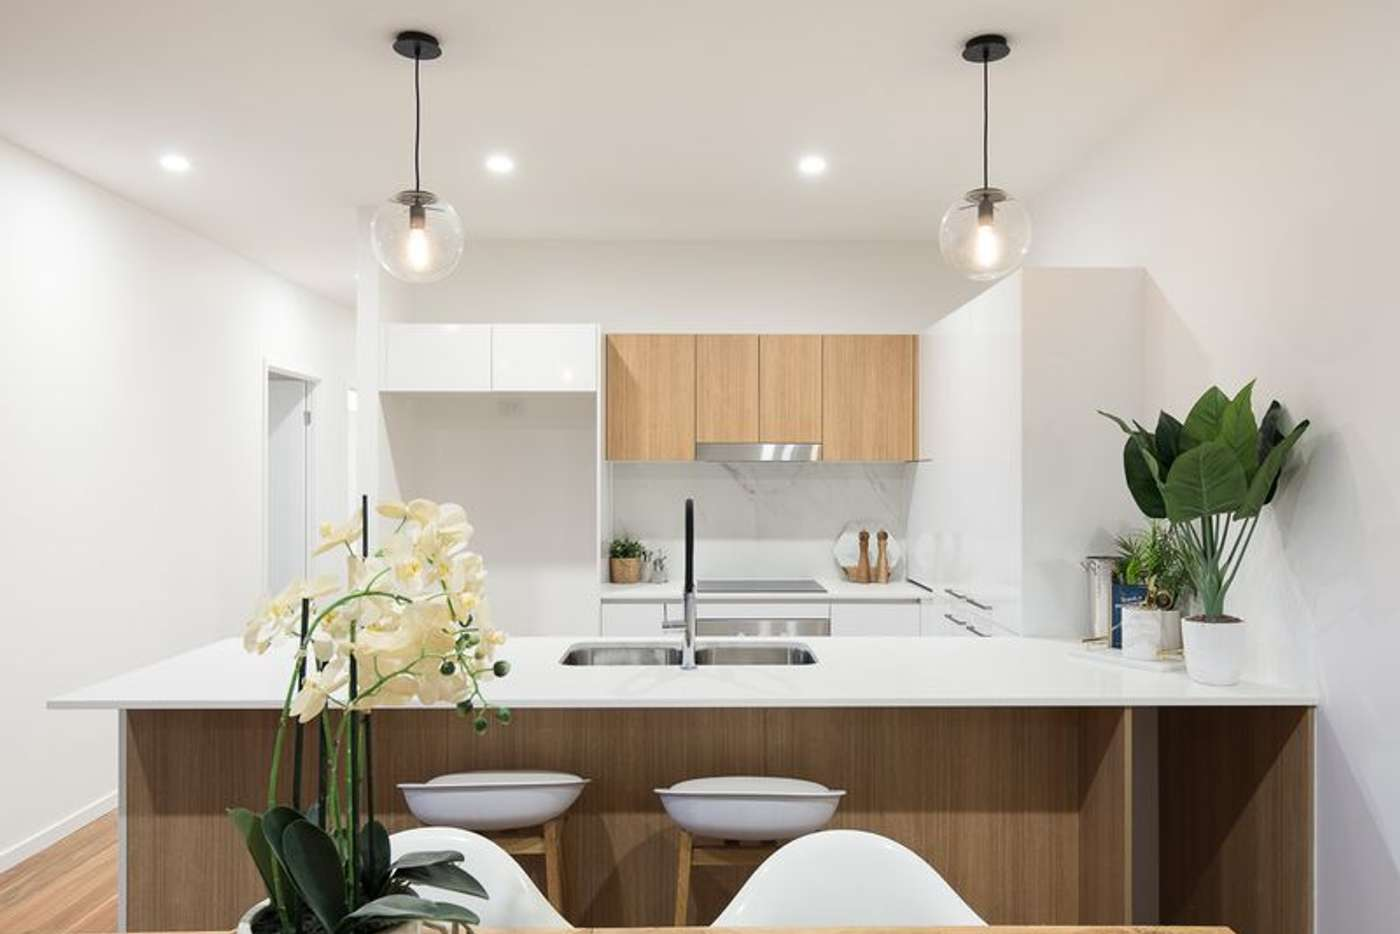 Main view of Homely apartment listing, 2/62 York Street, Indooroopilly QLD 4068